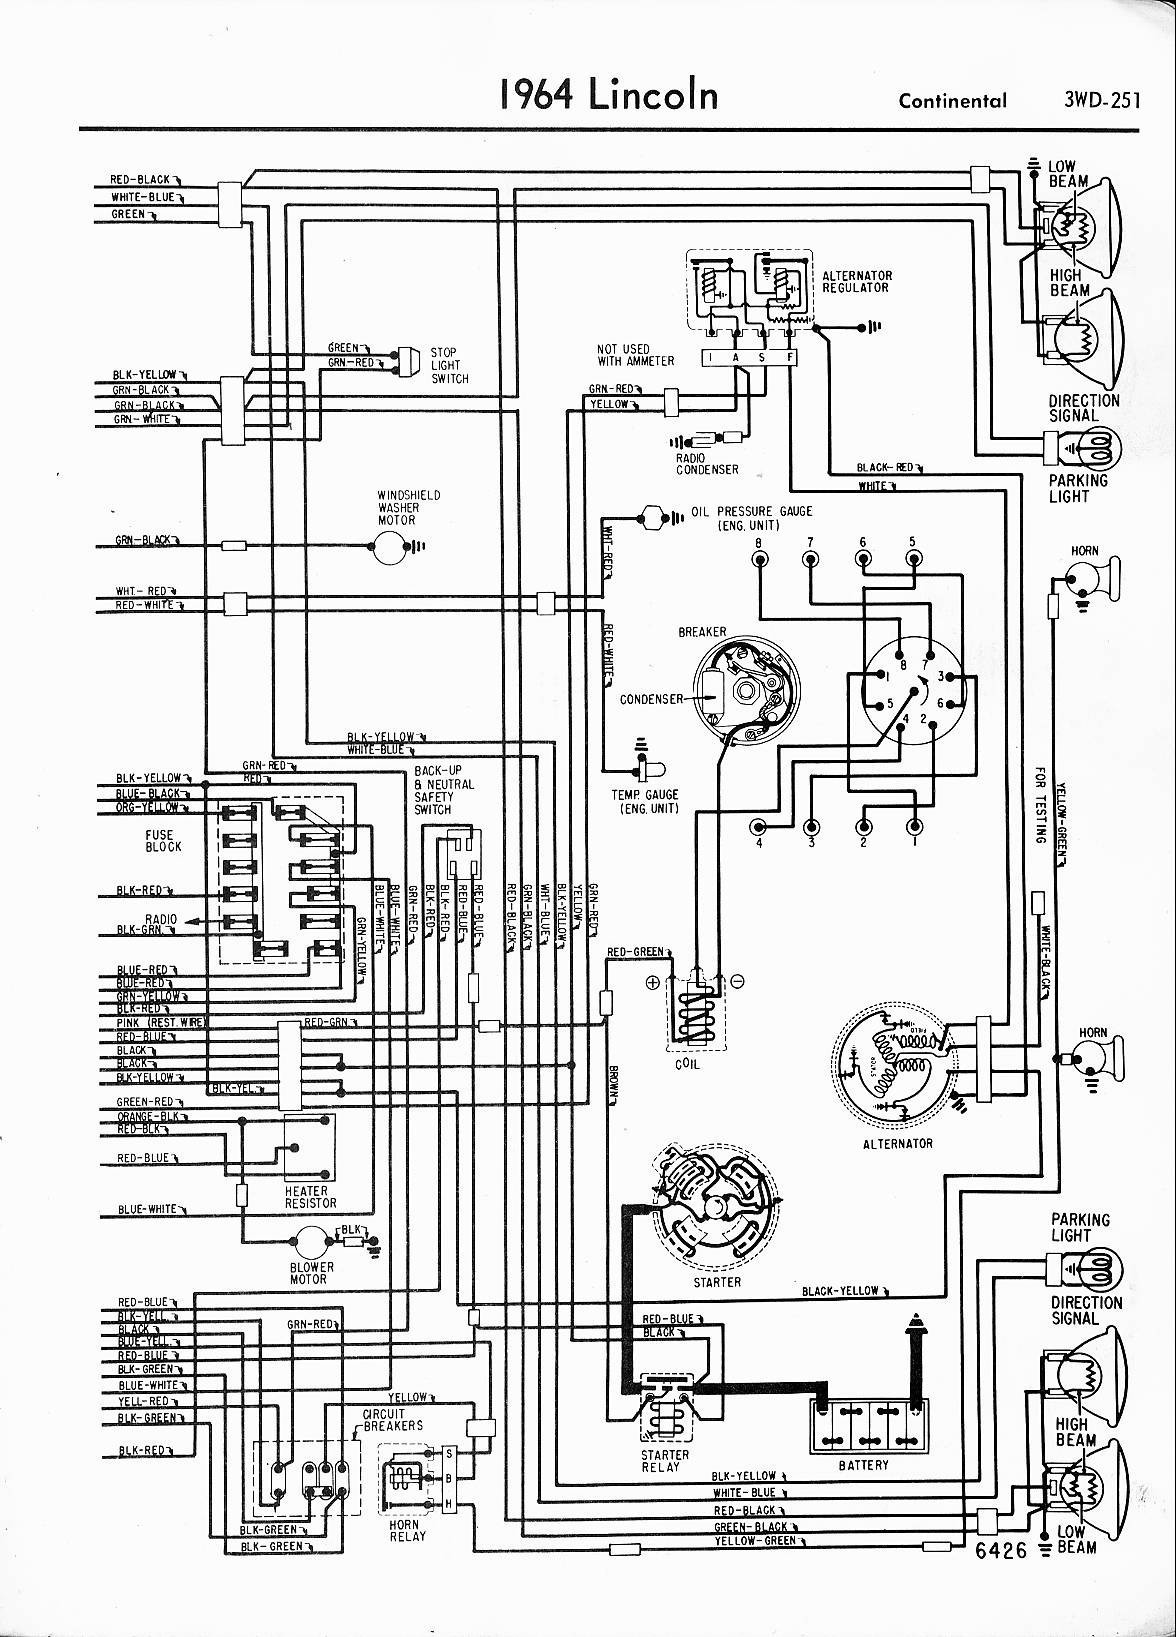 1999 lincoln continental fuse box diagram